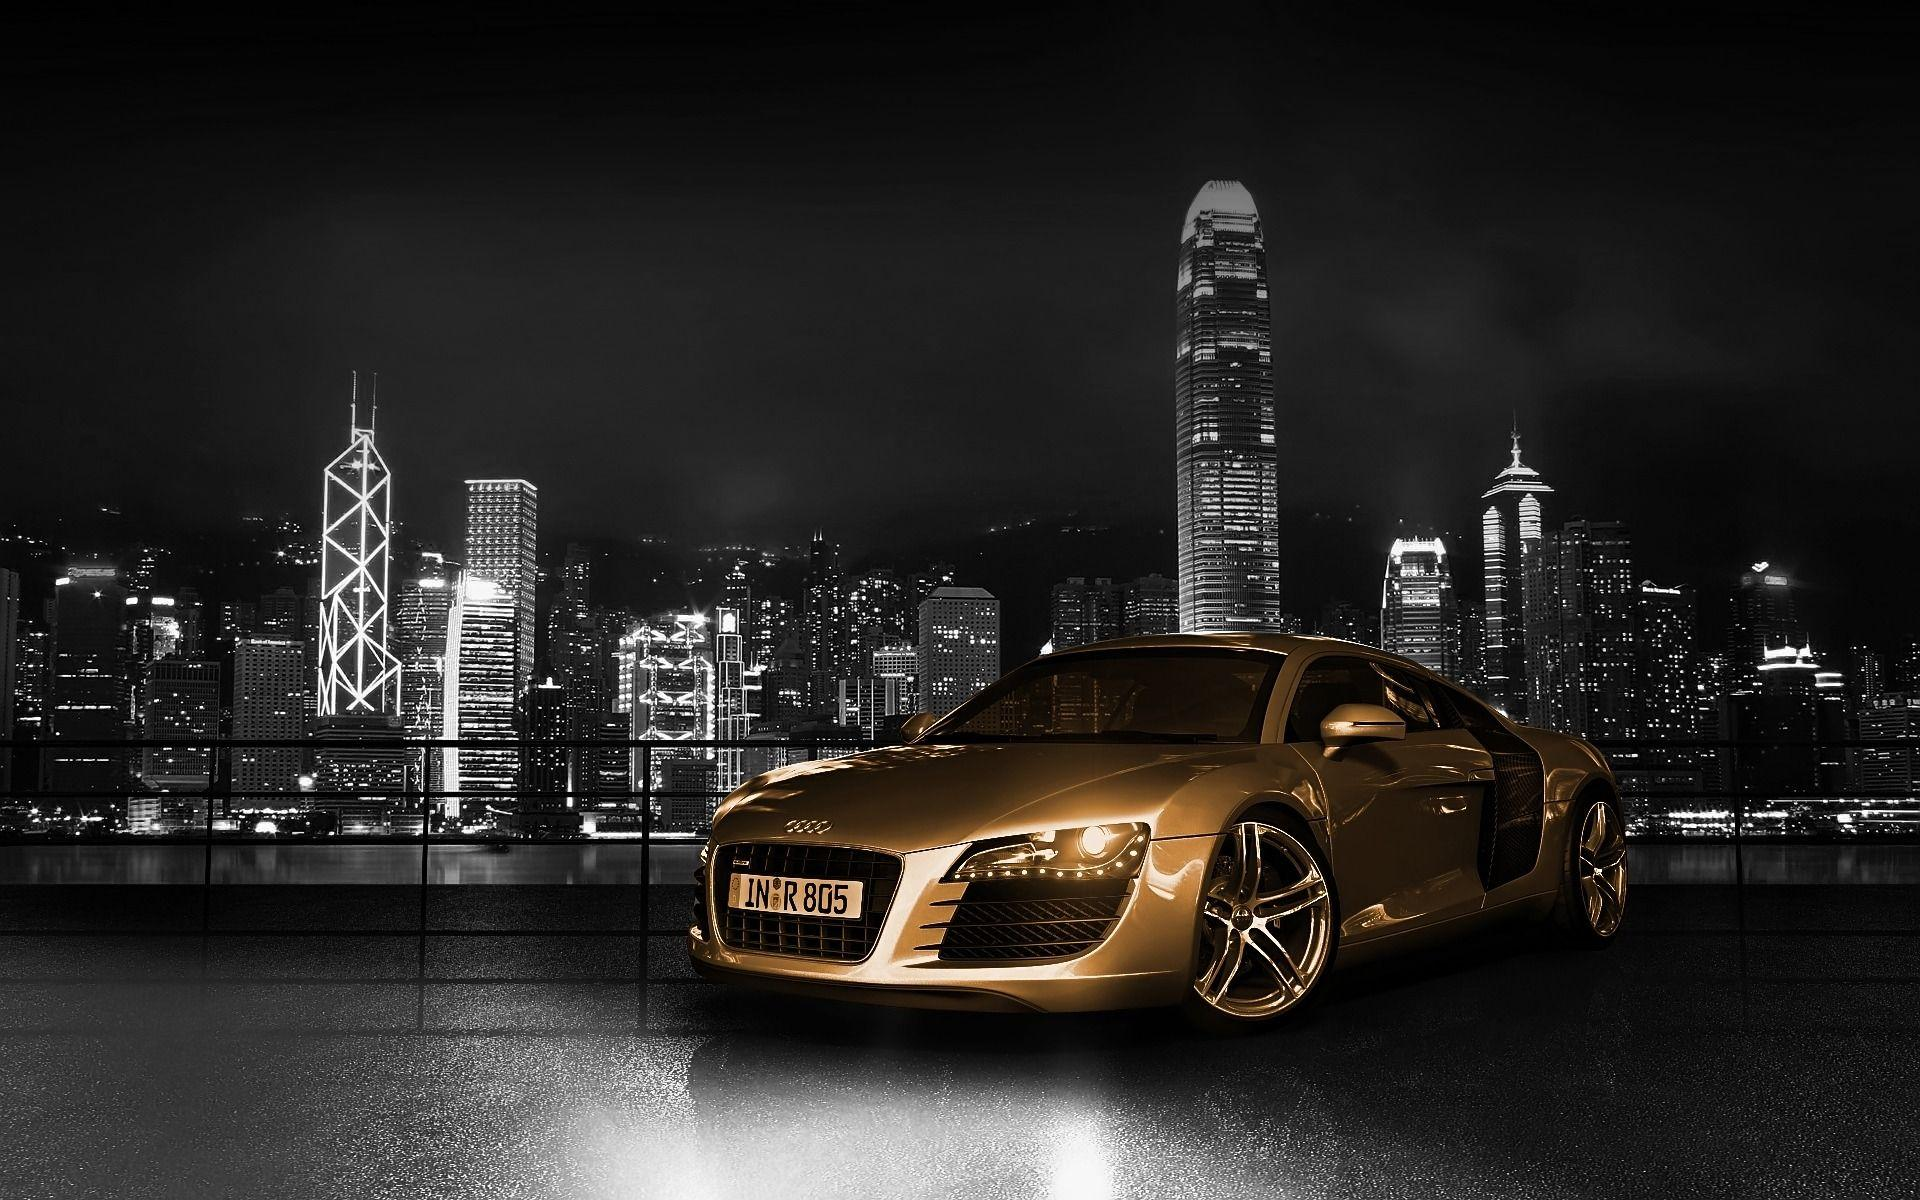 HD-audi-wallpapers-background - wallpaper.wiki